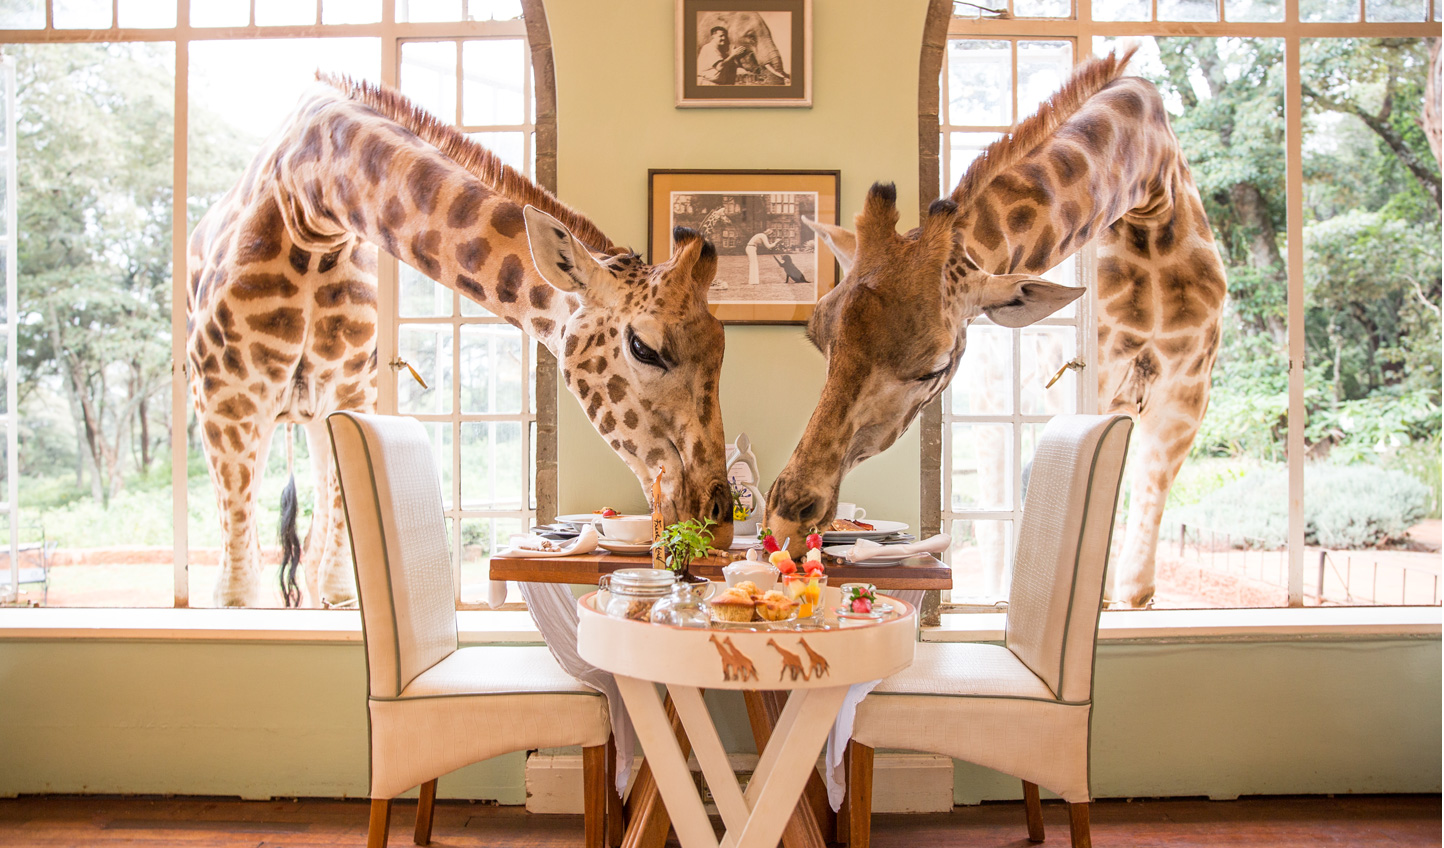 Share you breakfast with giraffes at Giraffe Manor